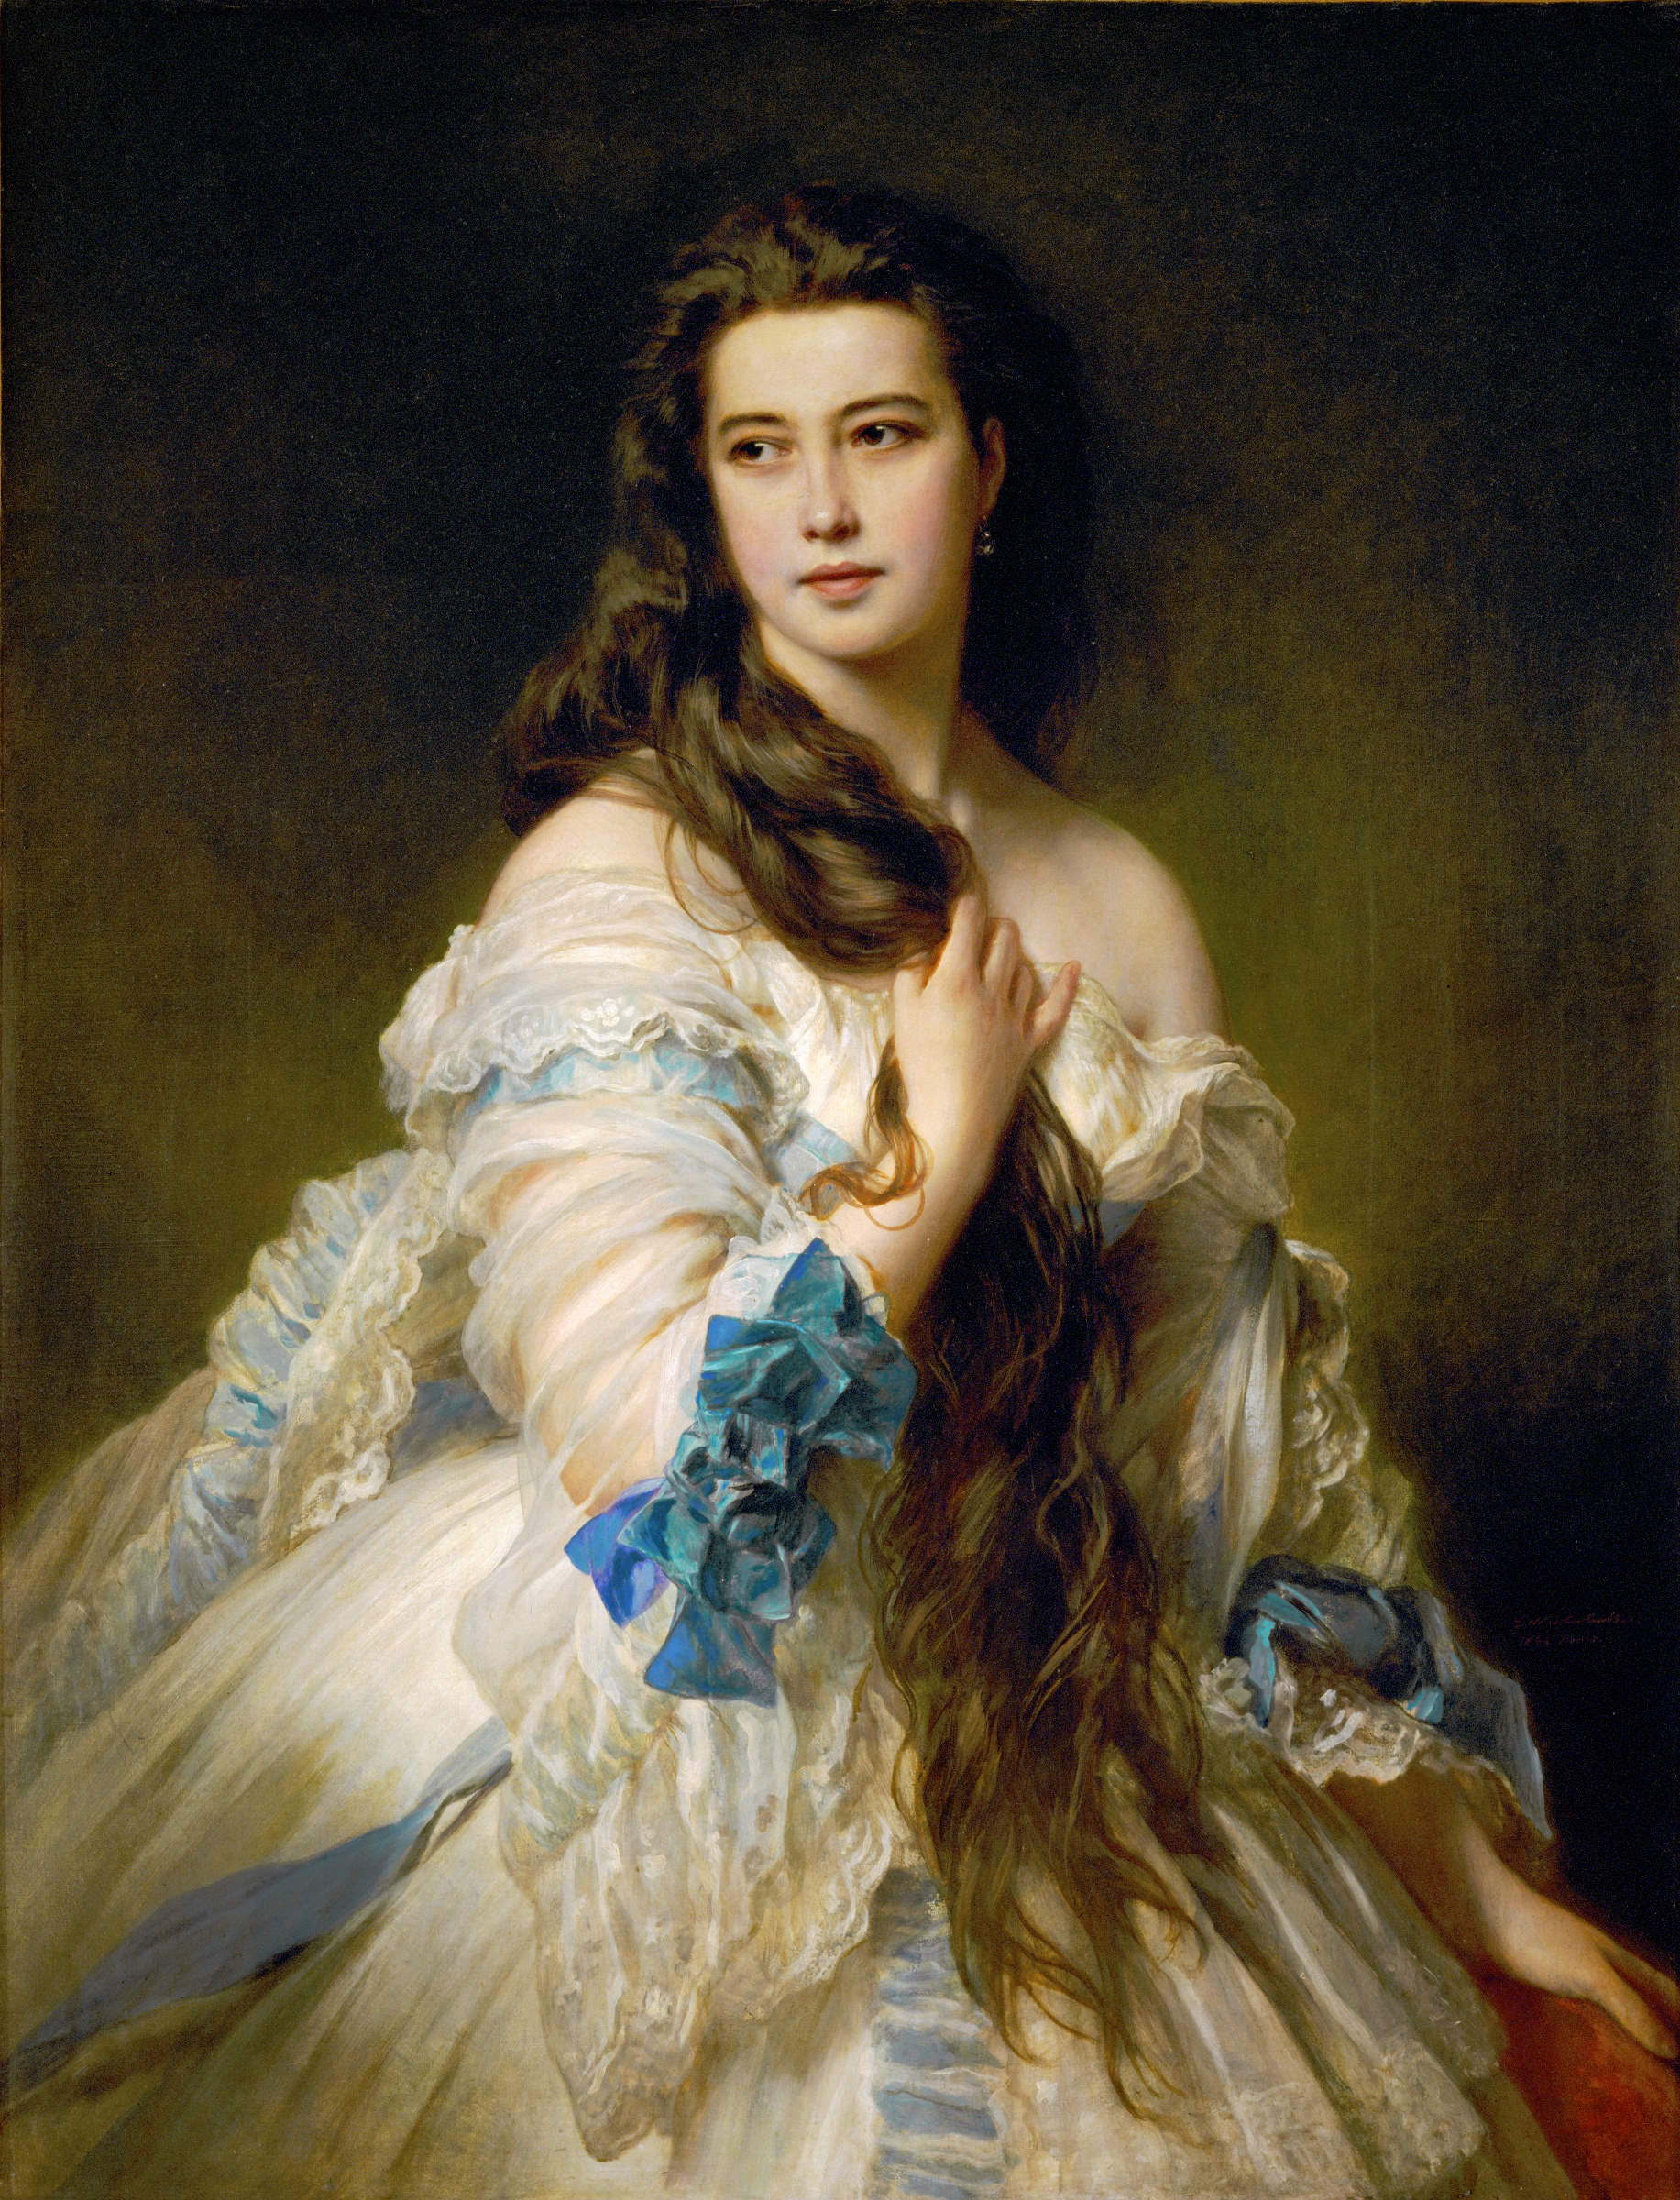 Franz X. Winterhalter, Madame Rimsky-Korsakov, 1864, oil on canvas, Musée d'Orsay, Paris, on permanent loan from the Louvre.